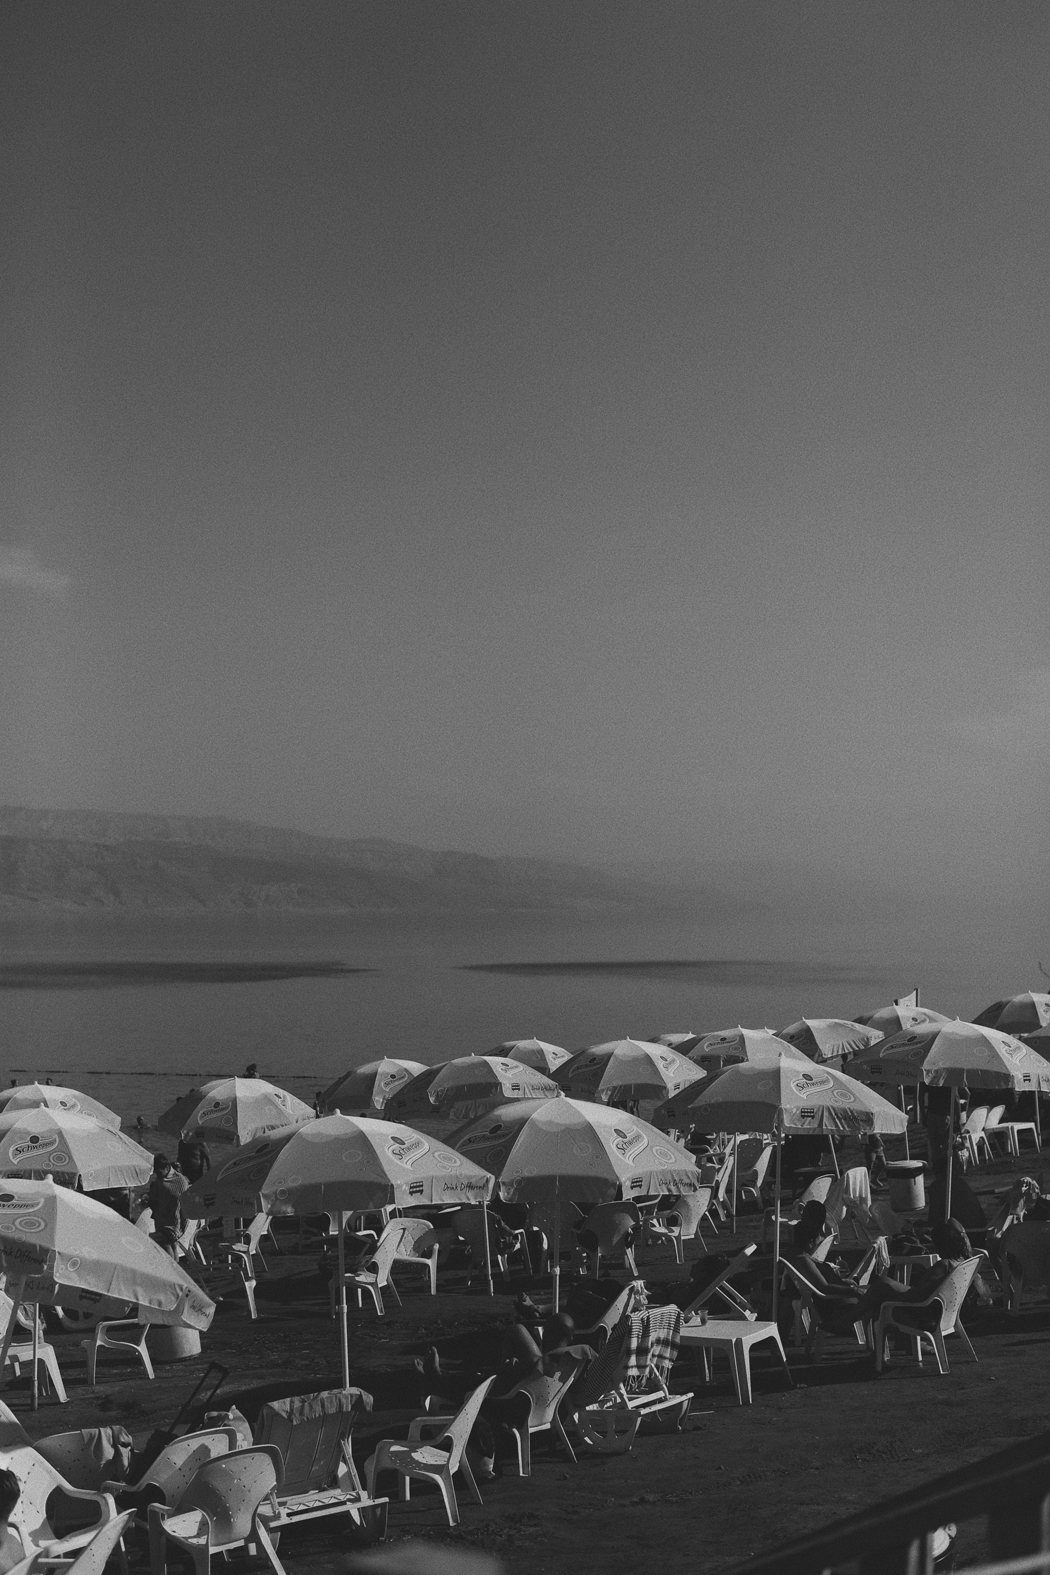 A Visual Story - Shot by Fiona Dinkelbach - Dead Sea, Israel